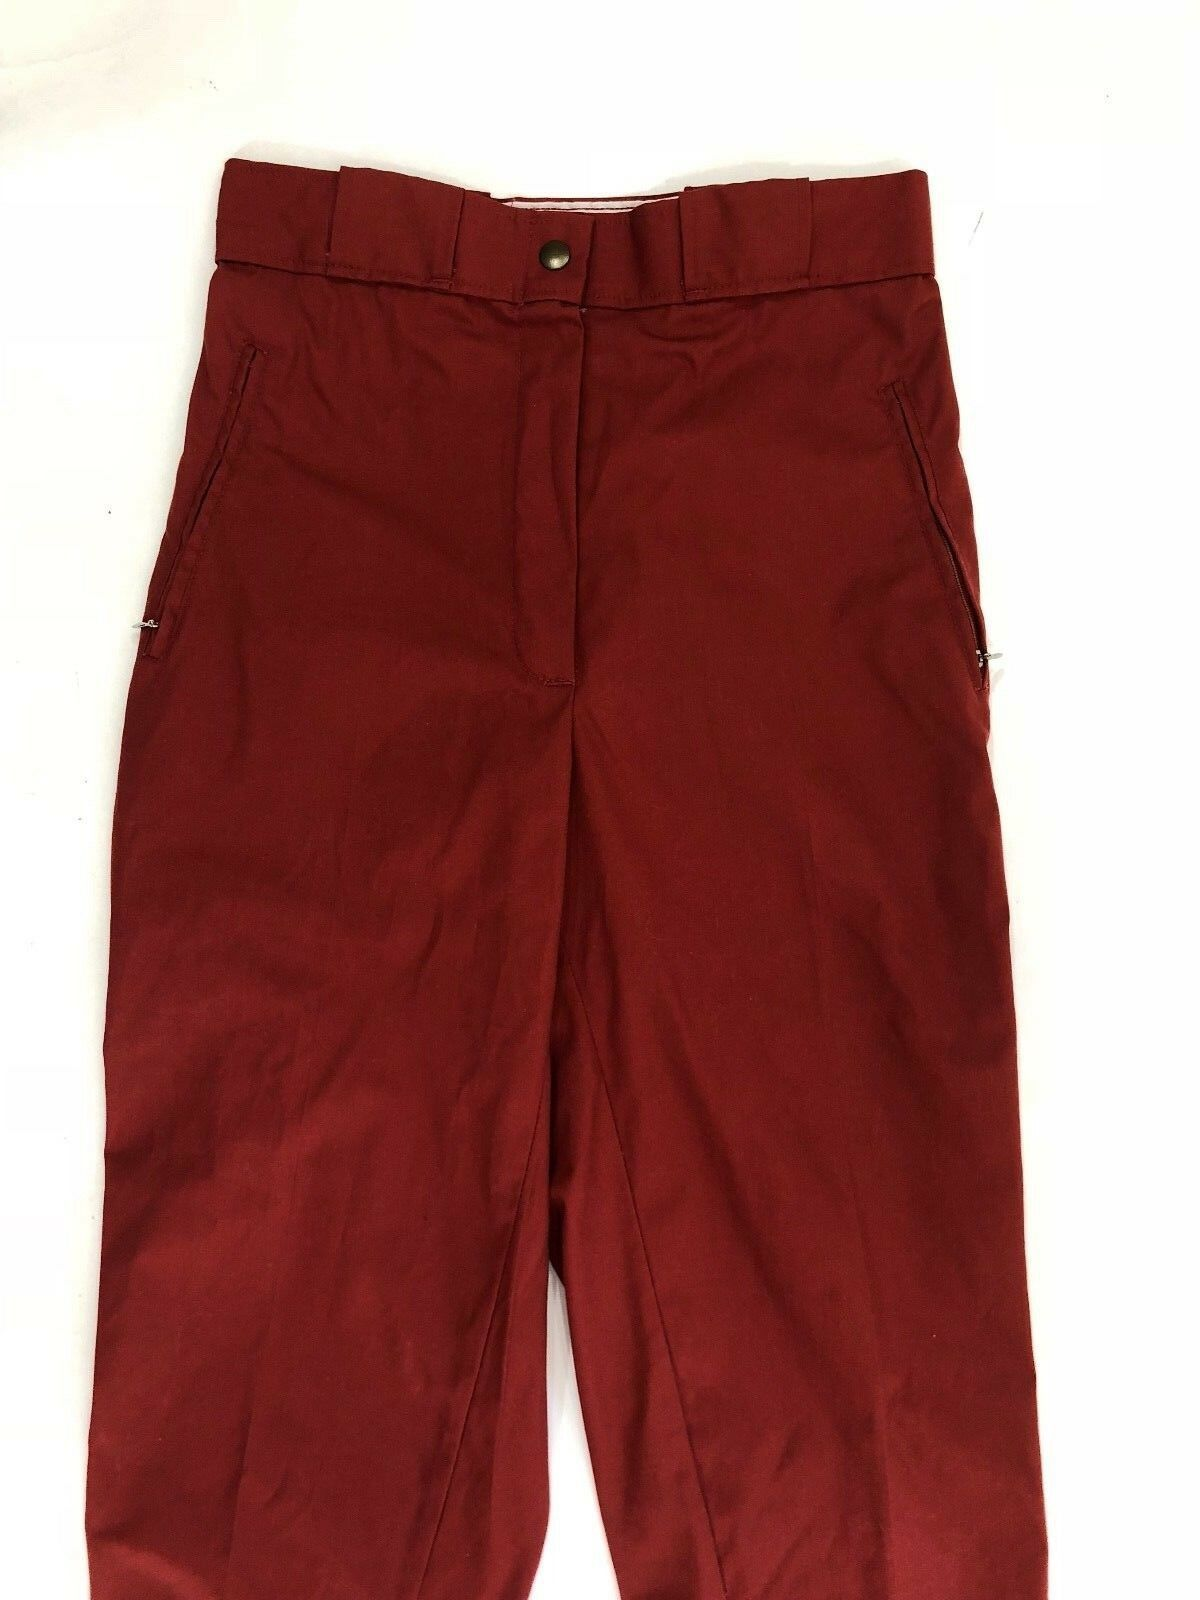 VTG 70s Sunbuster Womens Size 28 Cropped Ski Pants Knickers Brick Red image 3